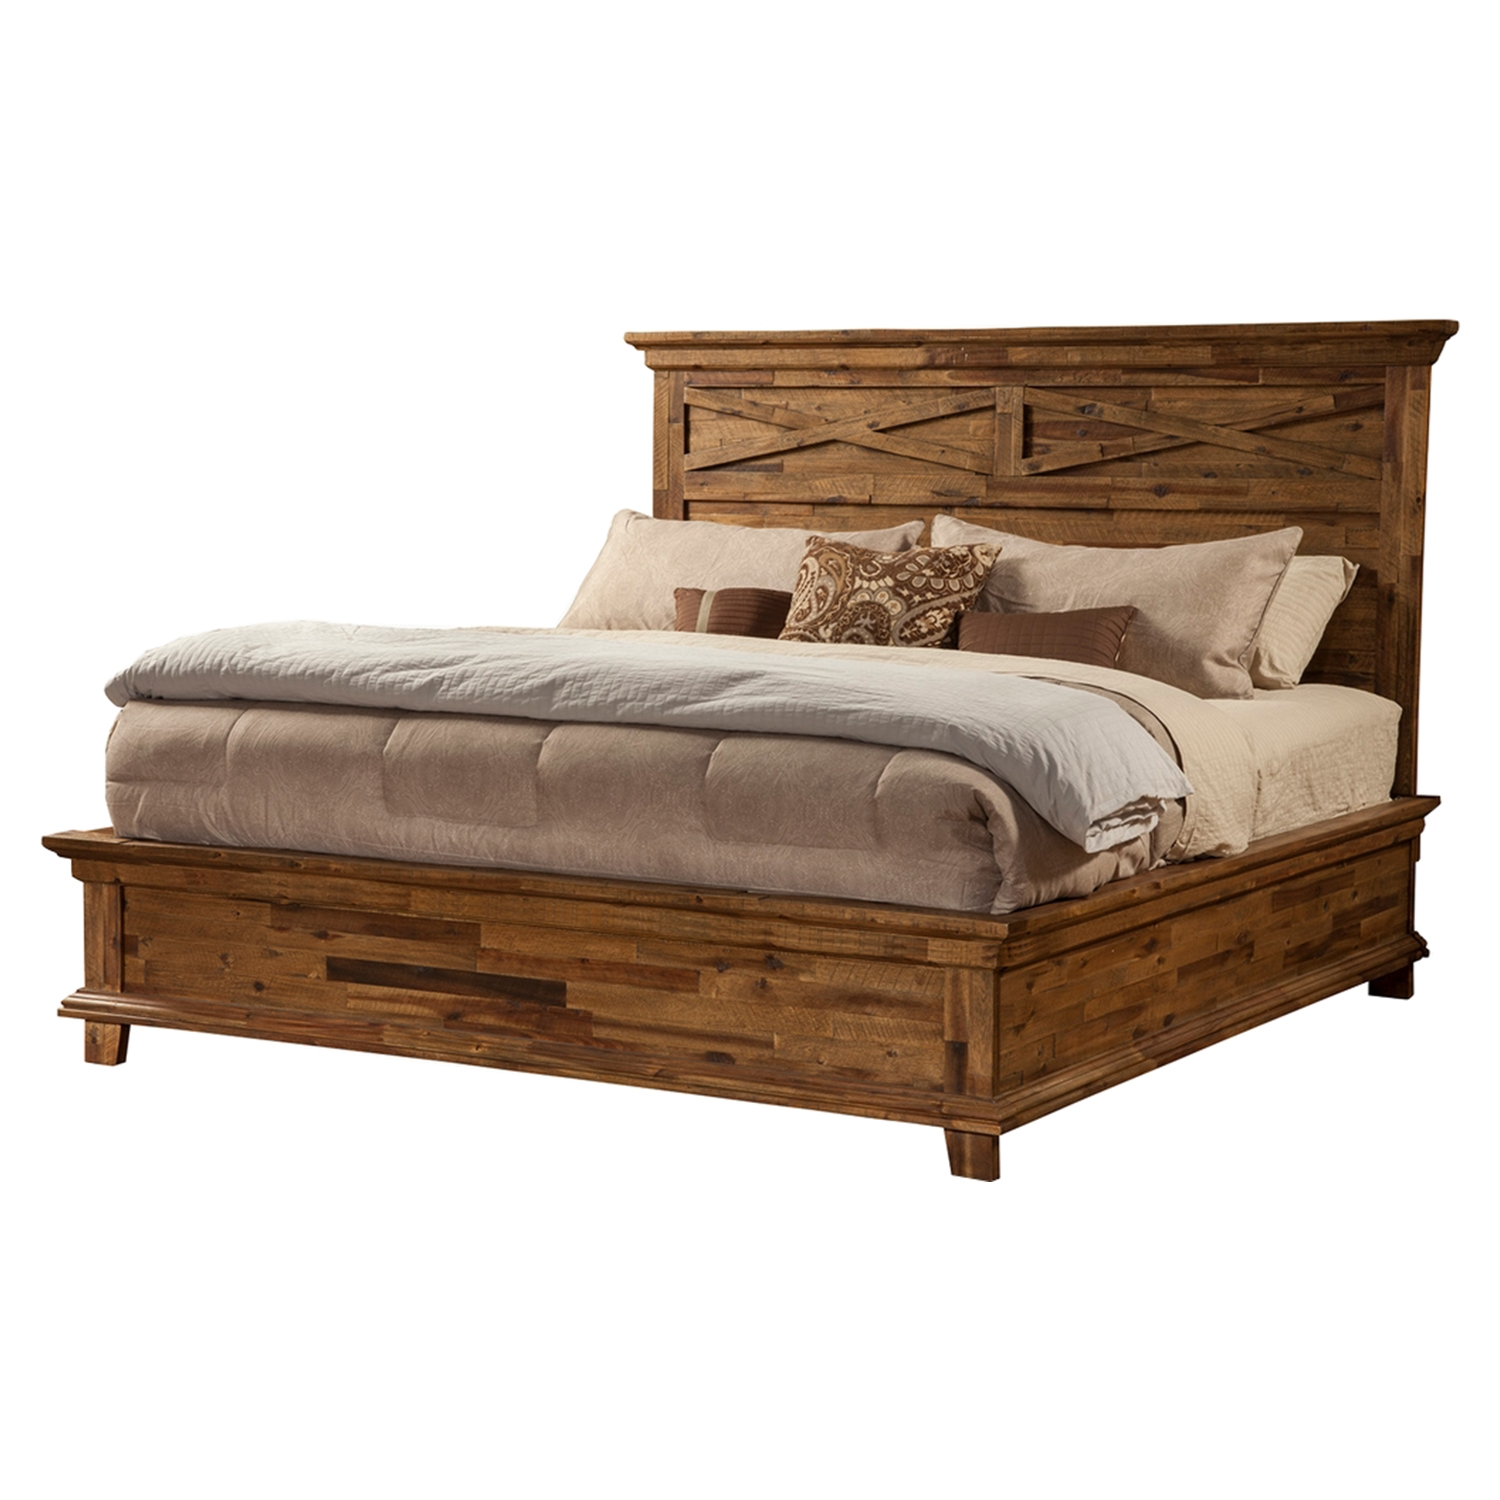 St James Platform Bed - Salvaged Brown - ALP-1478-BED